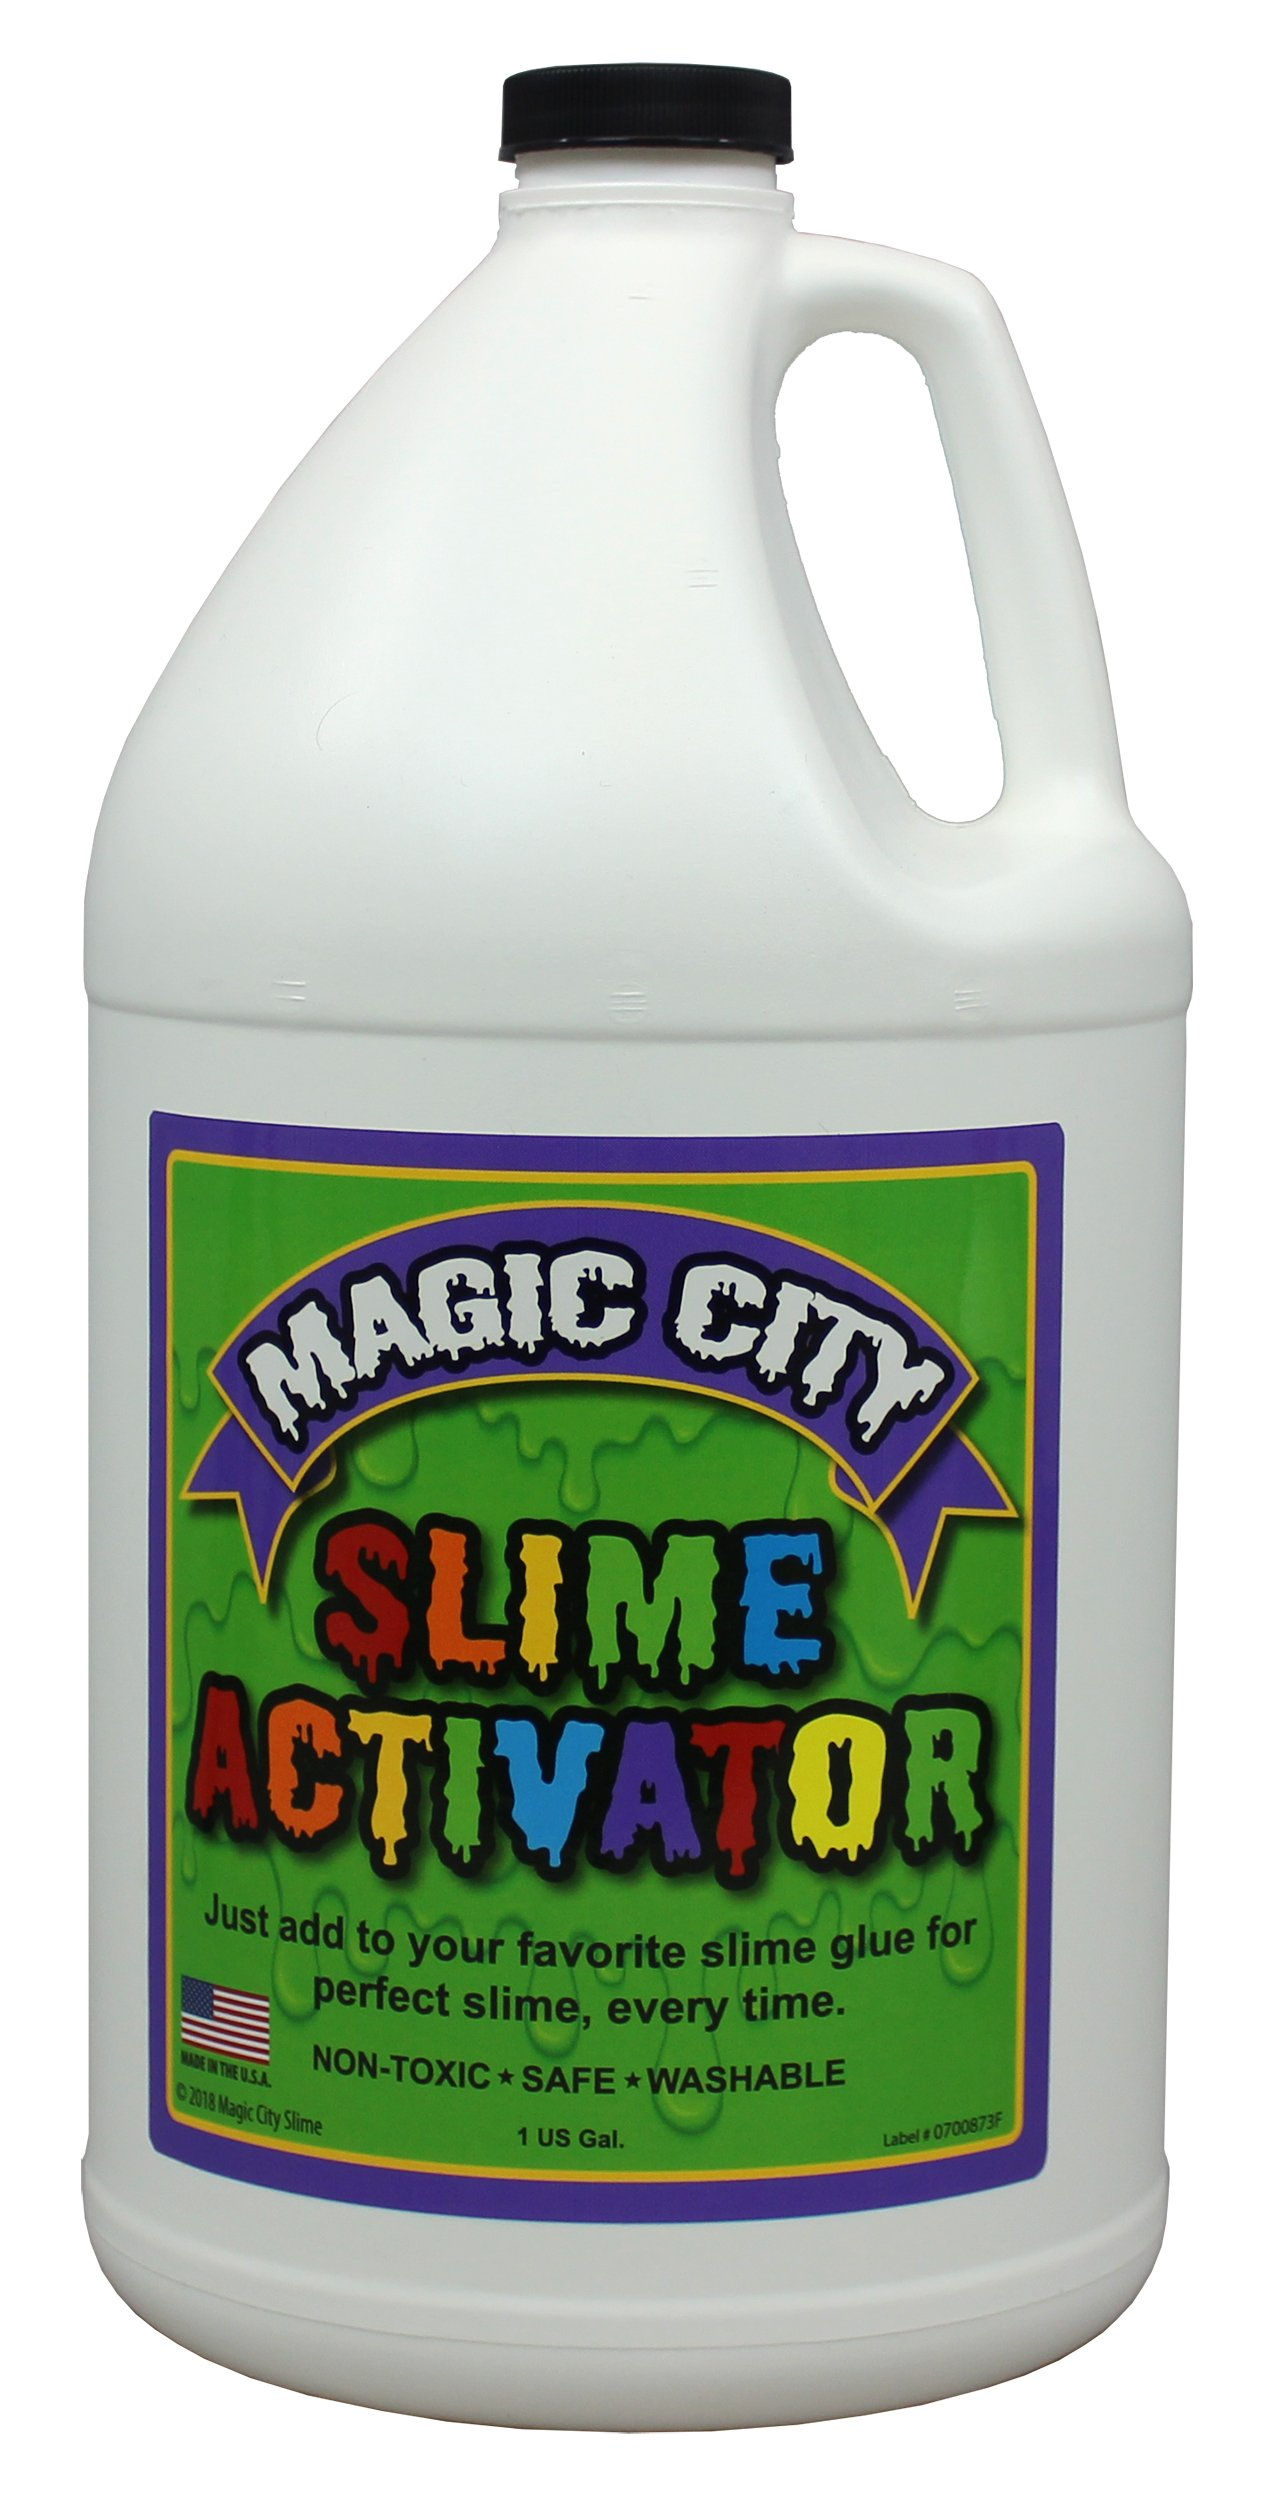 Magic City Slime Activator - Non Toxic, Just Add to Your Favorite Slime Glue for Great Slime Every Time, Made in USA (1 Gallon) by Magic City Slime